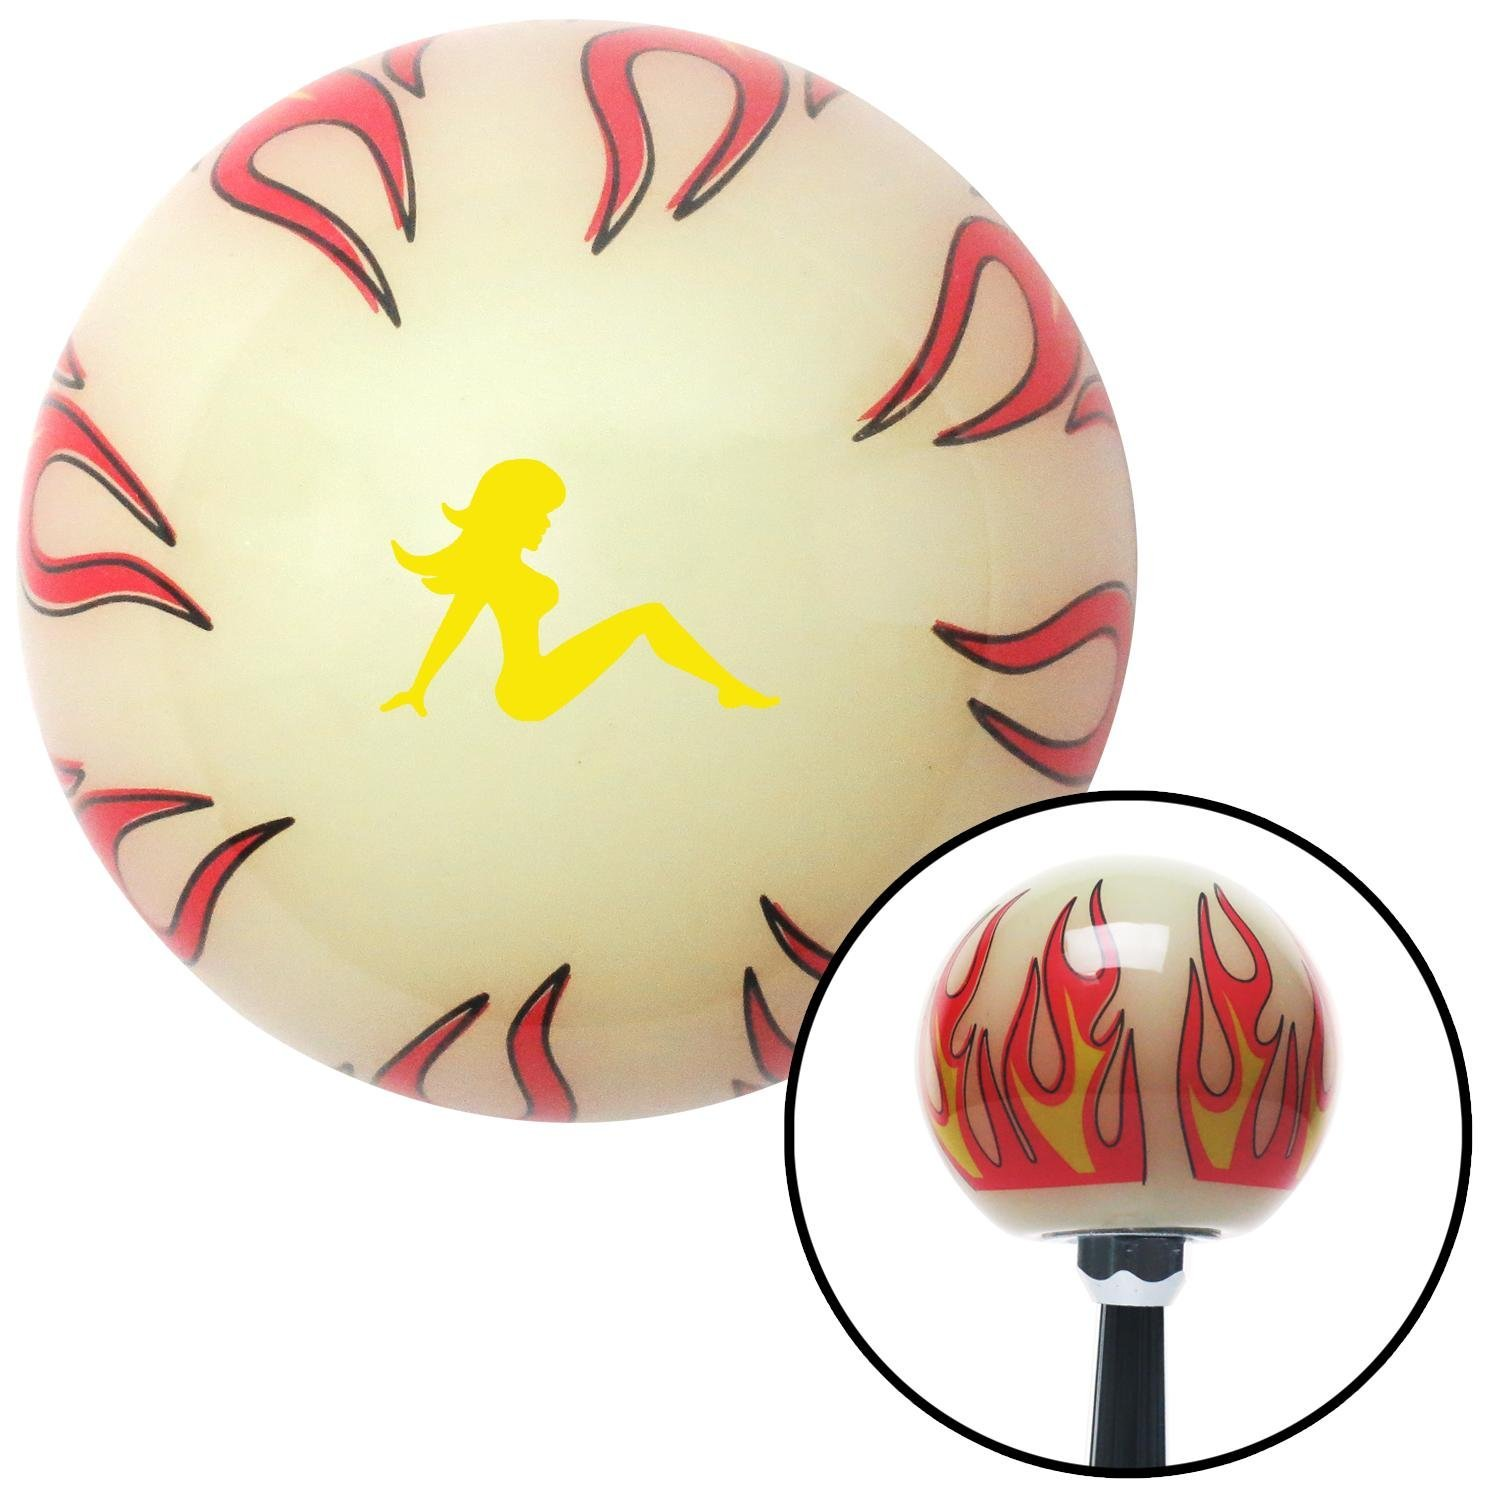 American Shifter 293368 Shift Knob Yellow Mudflap Girl Ivory Flame with M16 x 1.5 Insert